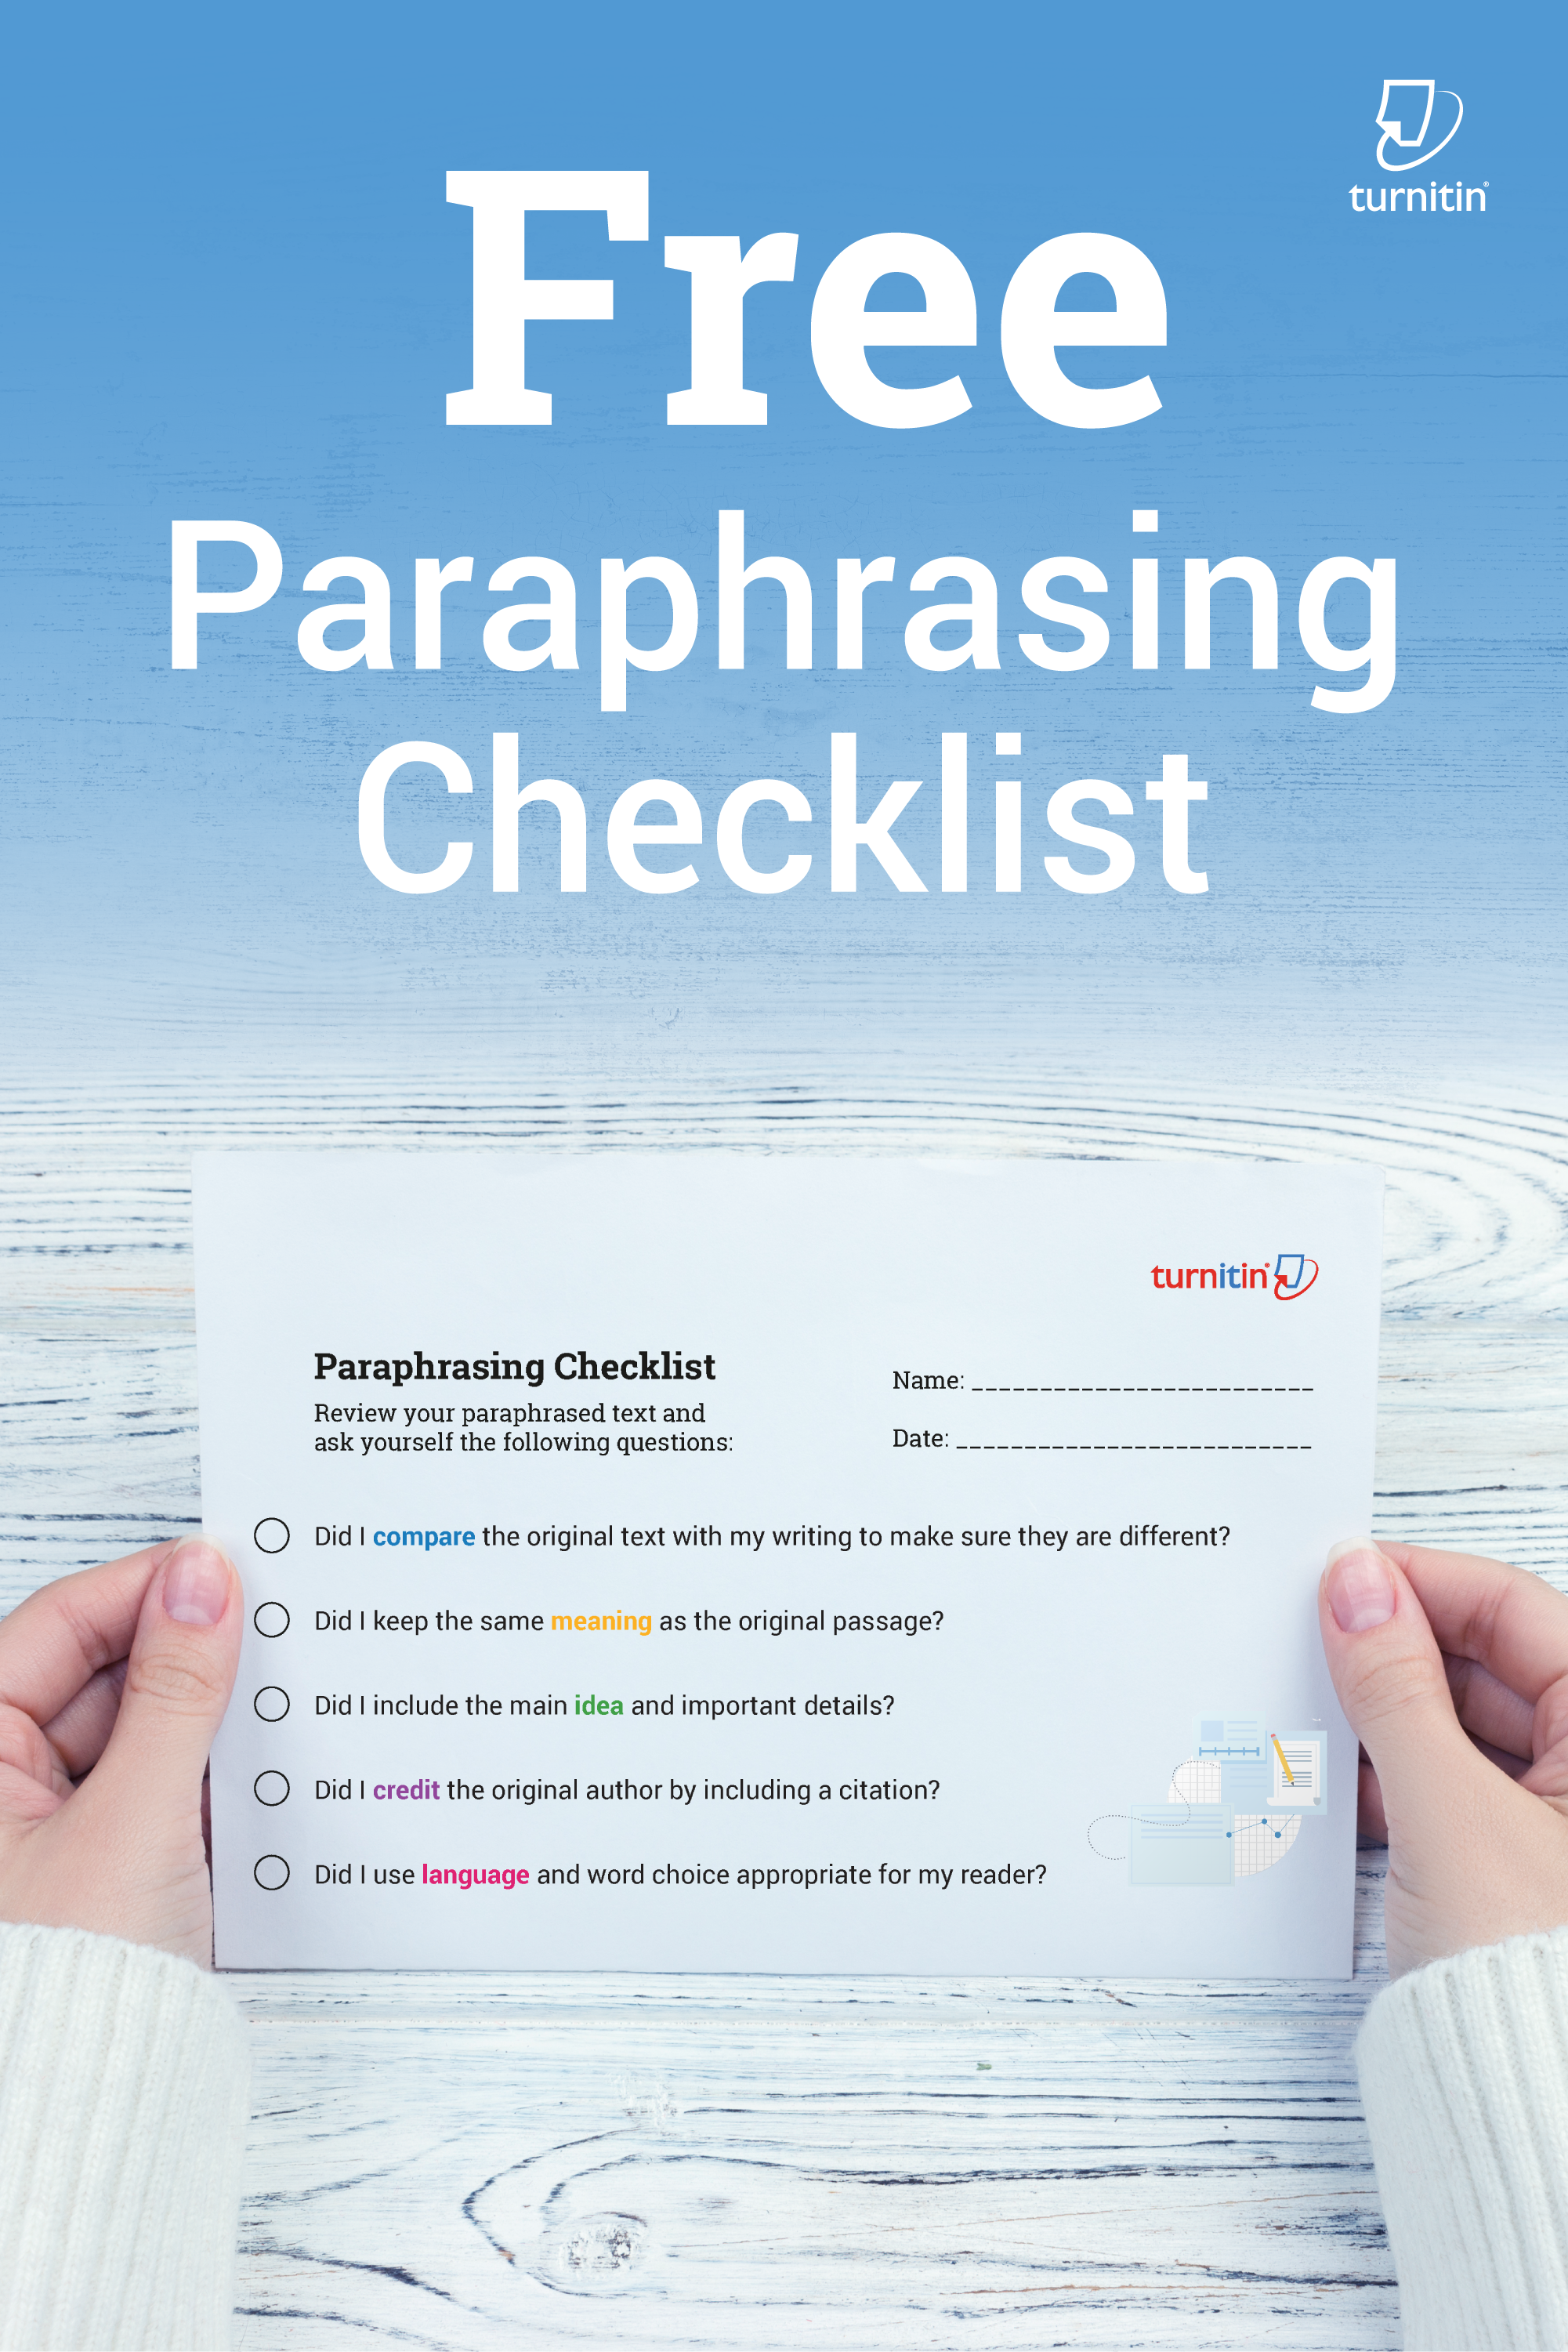 Paraphrasing Checklist Handout For Student Free Improve Writing A Paraphrased Passage Must Be Cited